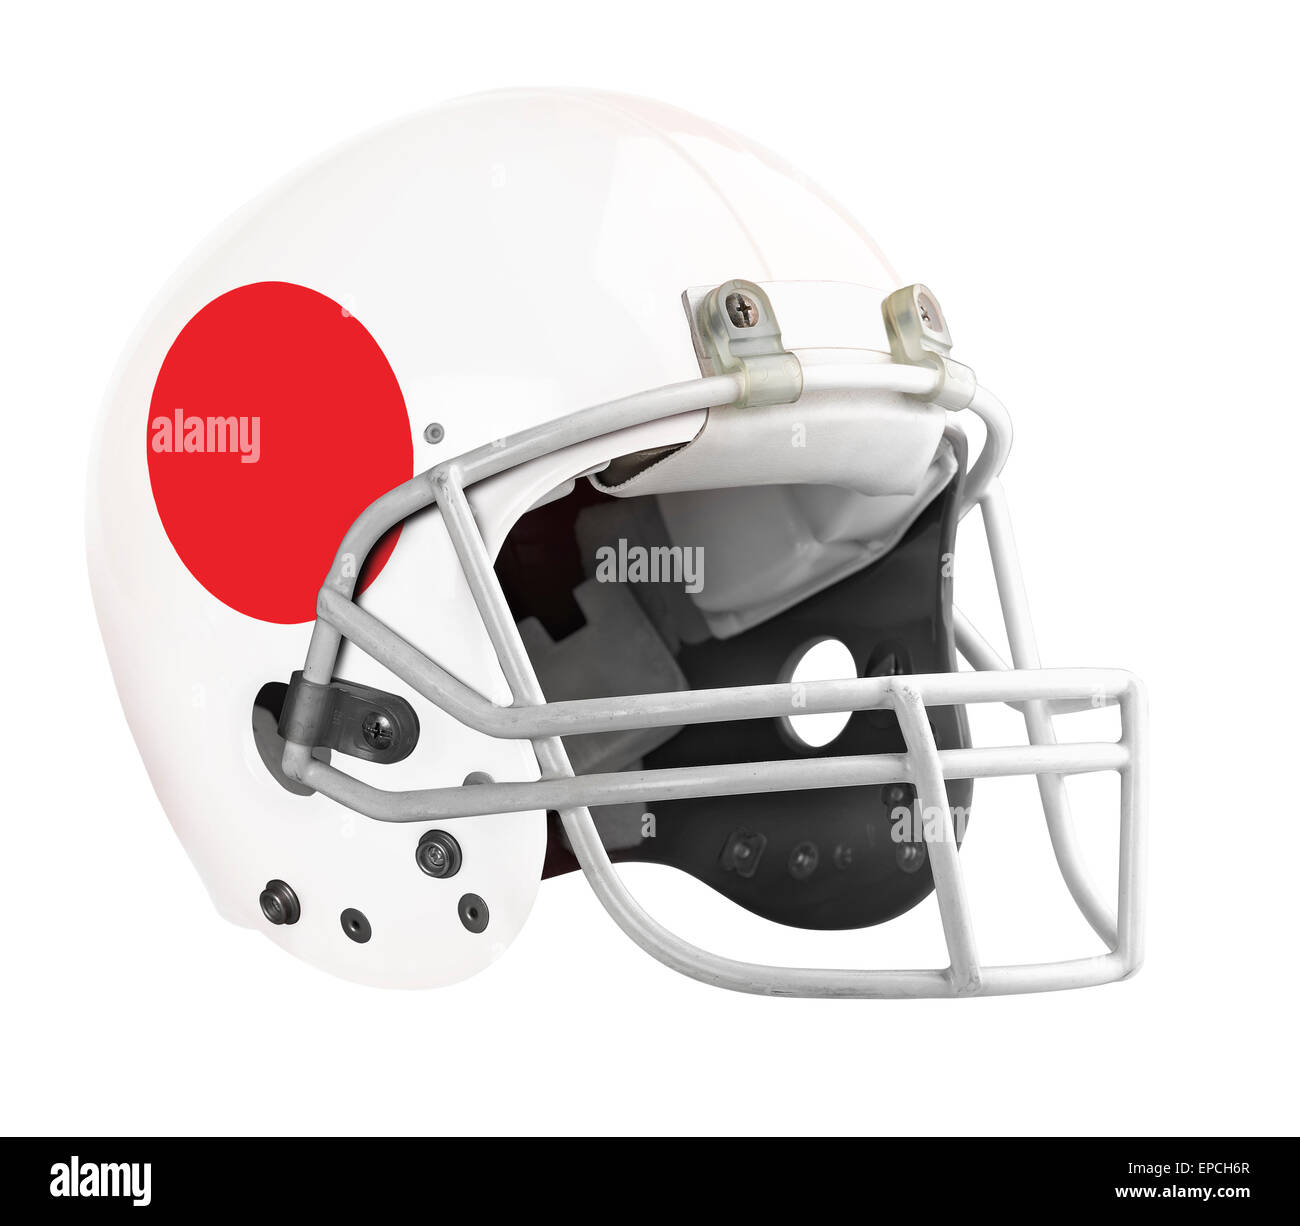 Flagged Japan American football helmet isolated on a white background with detailed clipping path. Stock Photo